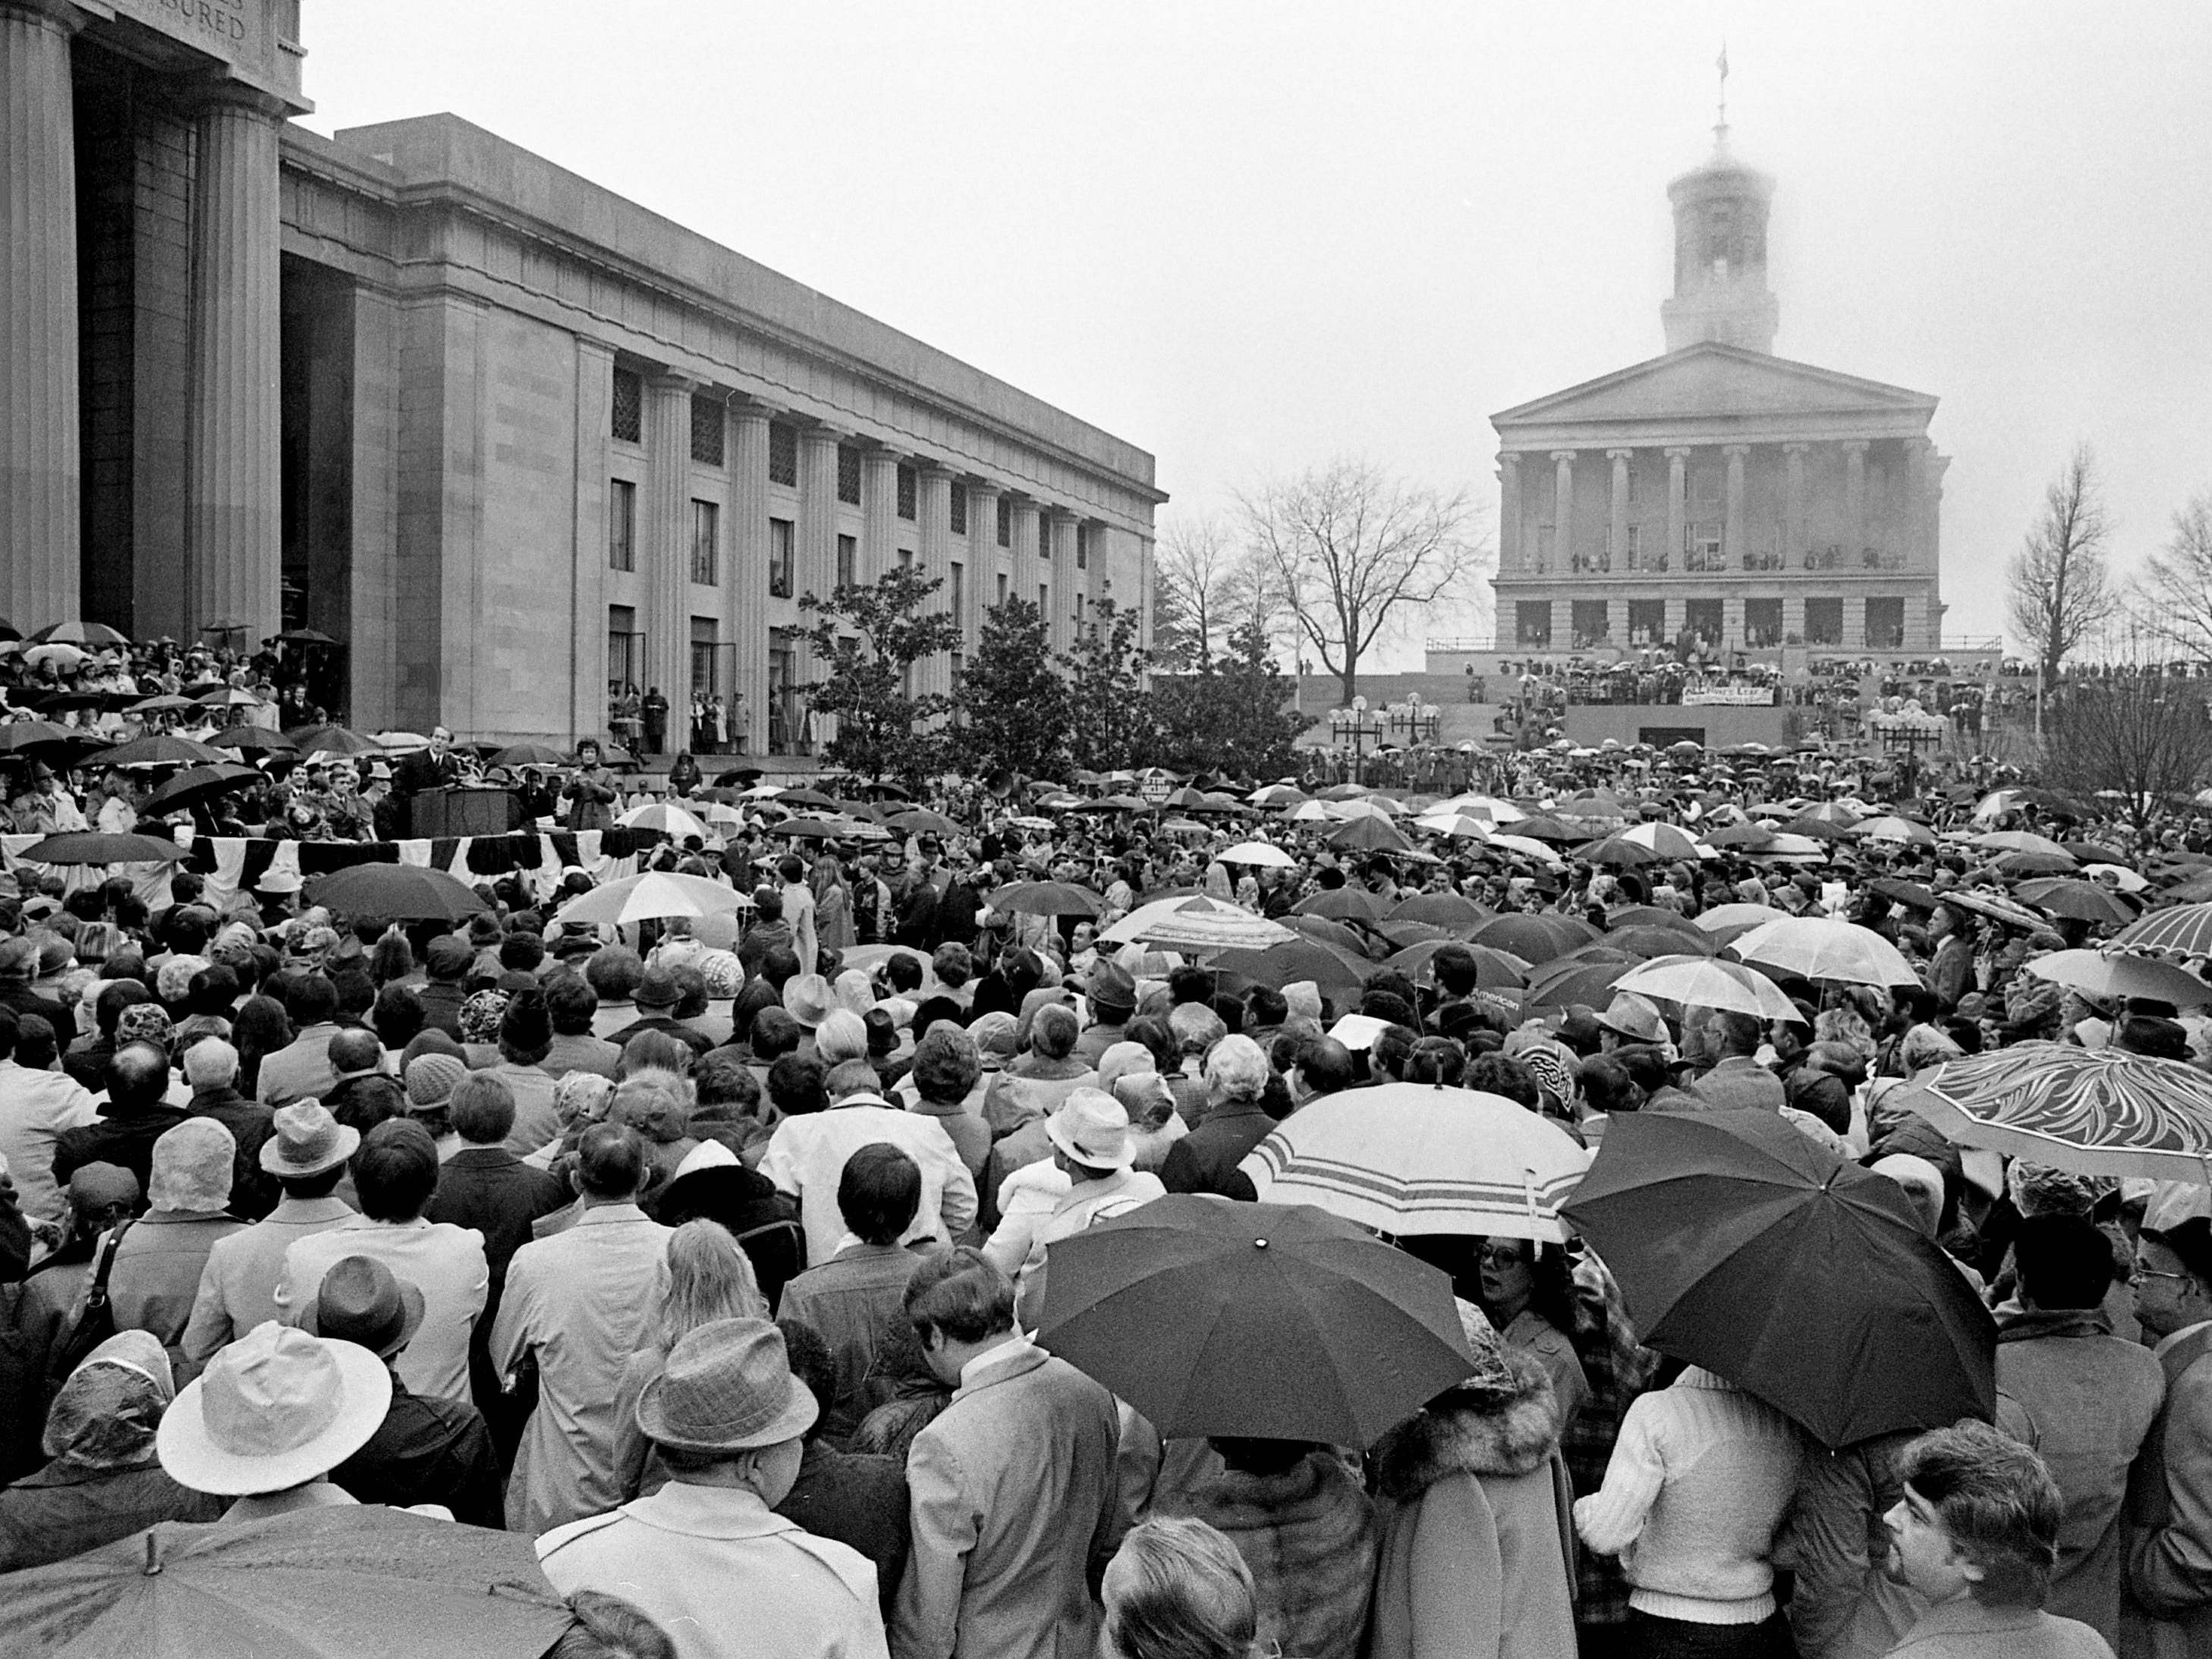 Gov. Lamar Alexander delivers his inaugural speech to a crowd that overflows the Legislative Plaza despite dreary weather Jan. 20, 1979.